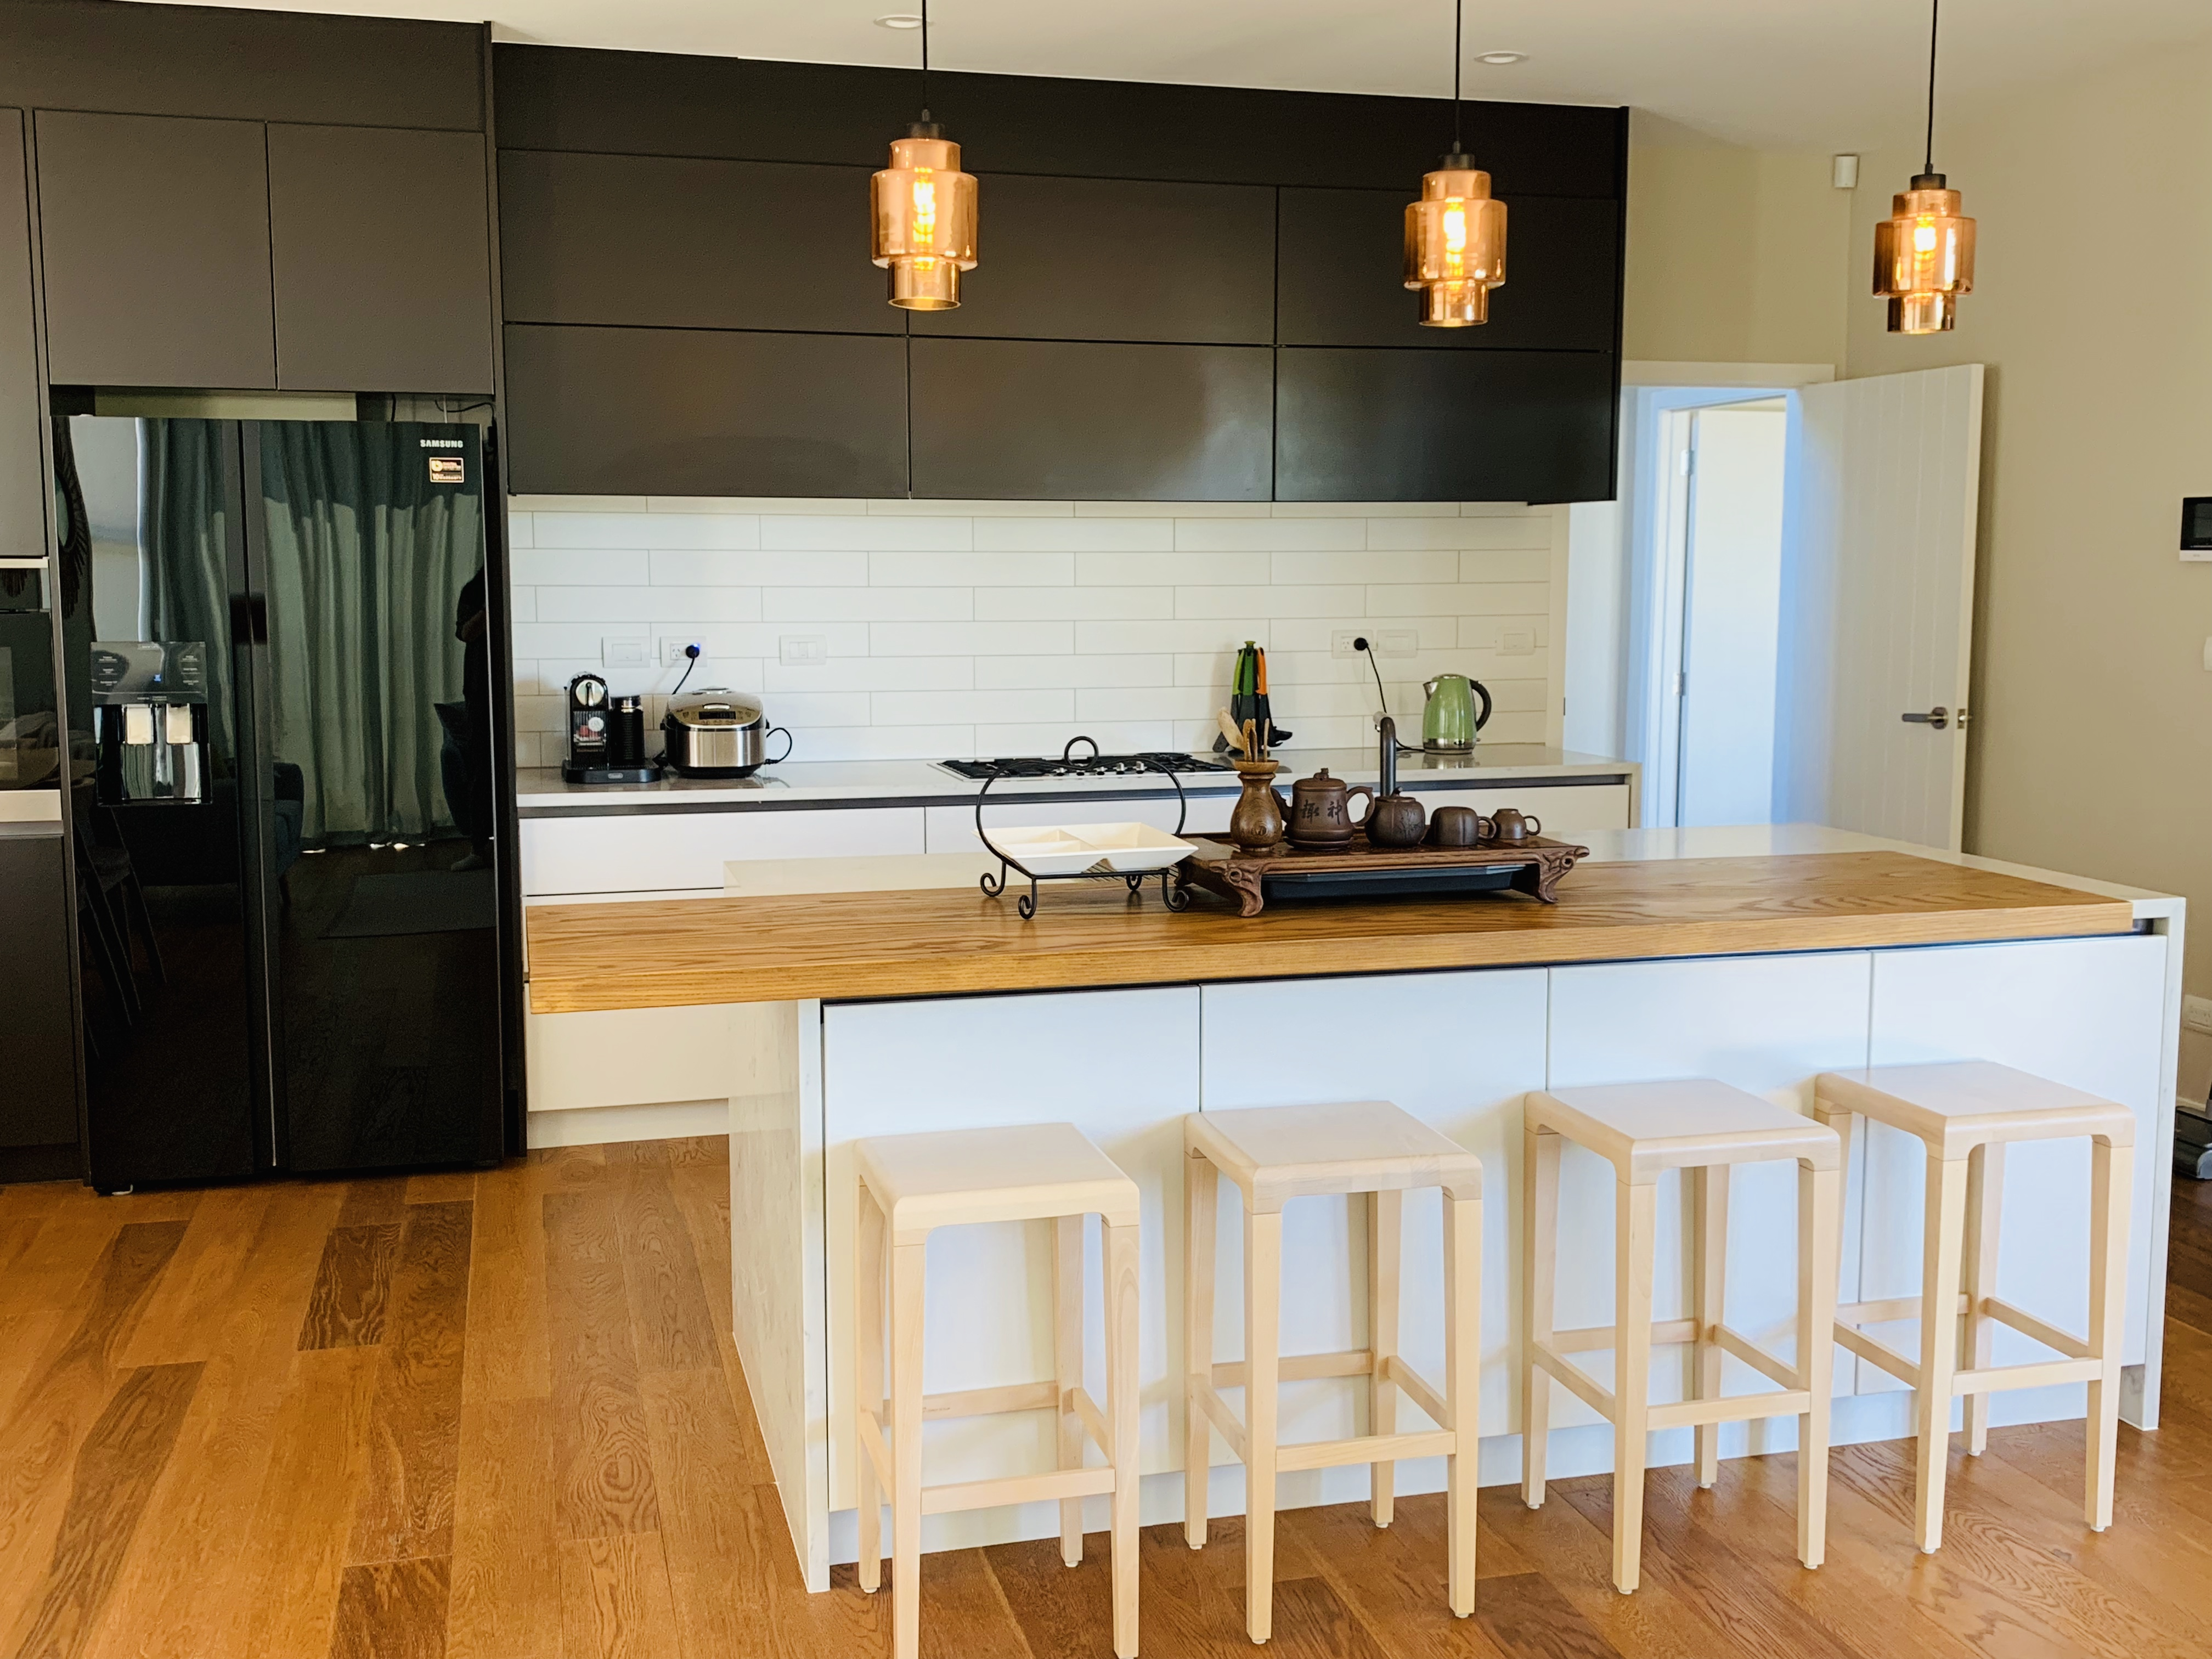 GJ-Kitchens-saint-helierss-kitchen-5-20190401222610224